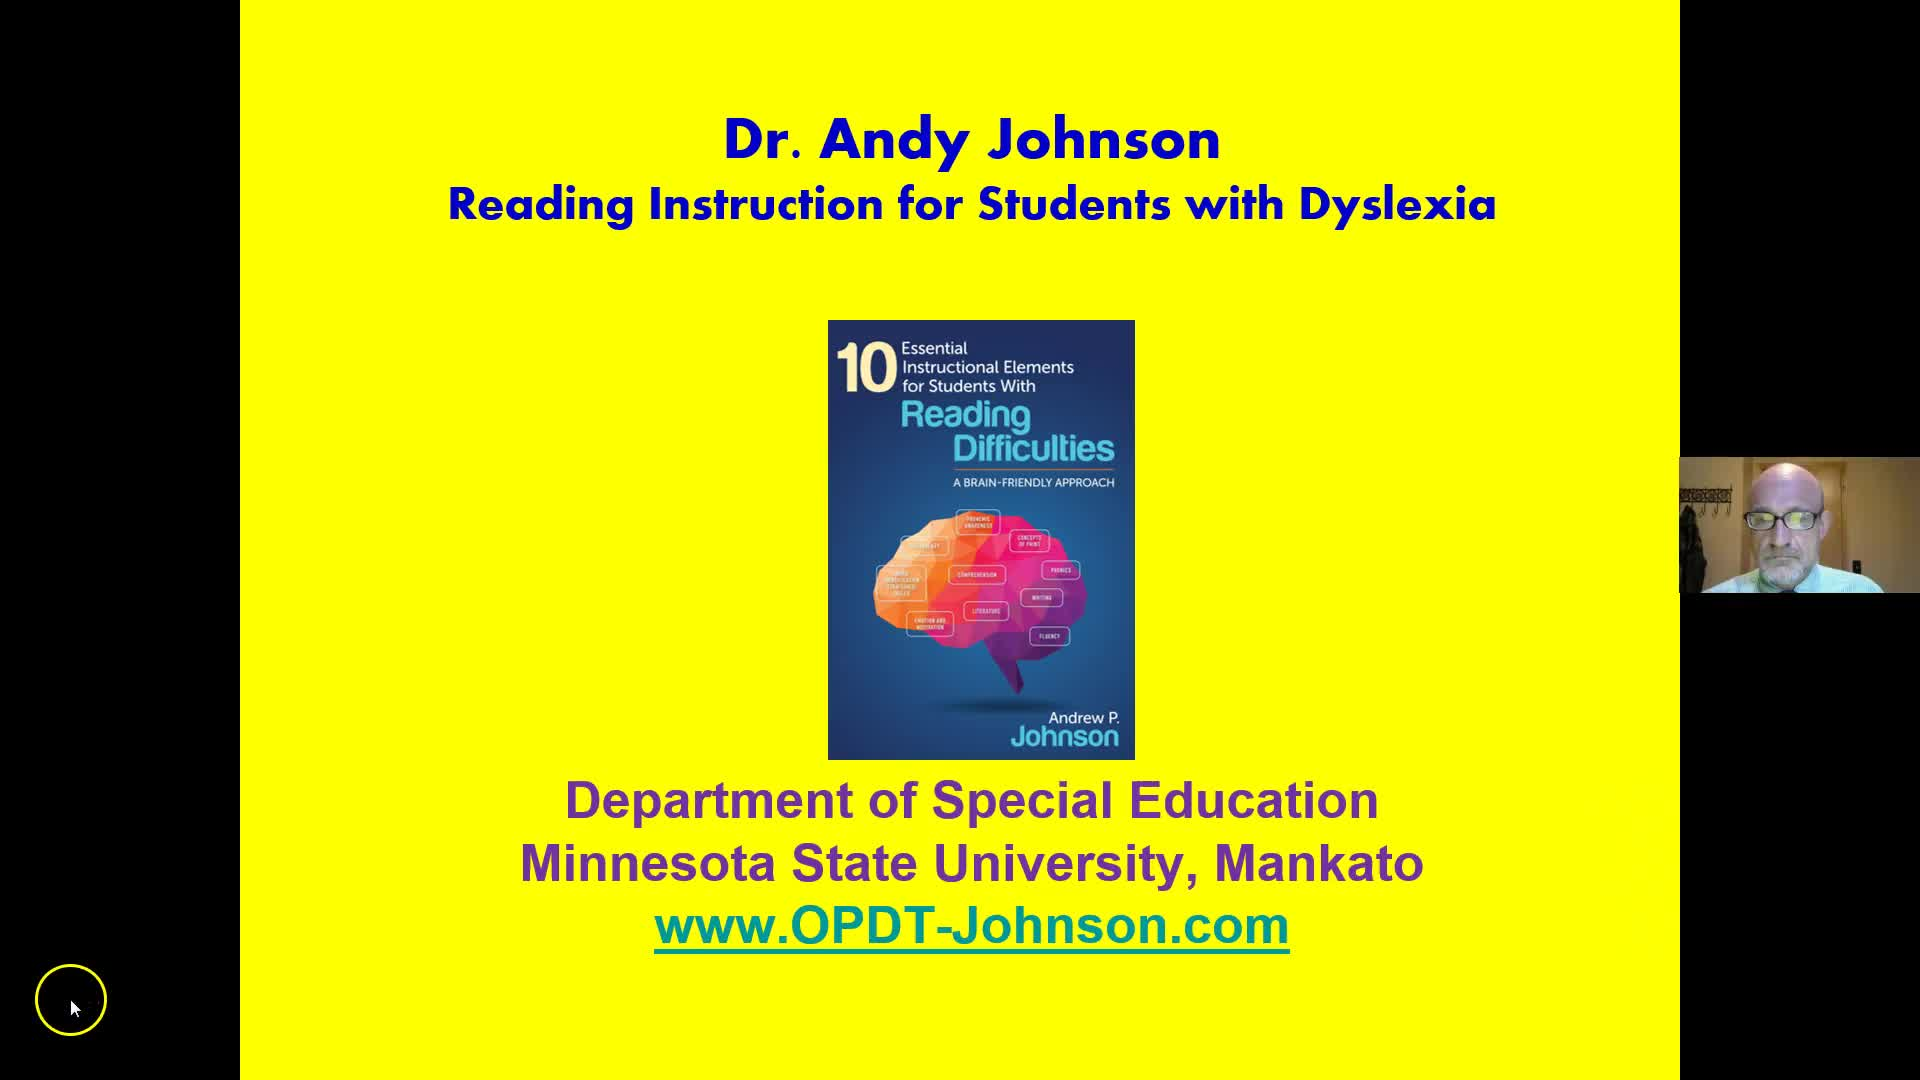 READING INSTRUCTION FOR STUDENTS WITH DYSLEXIA